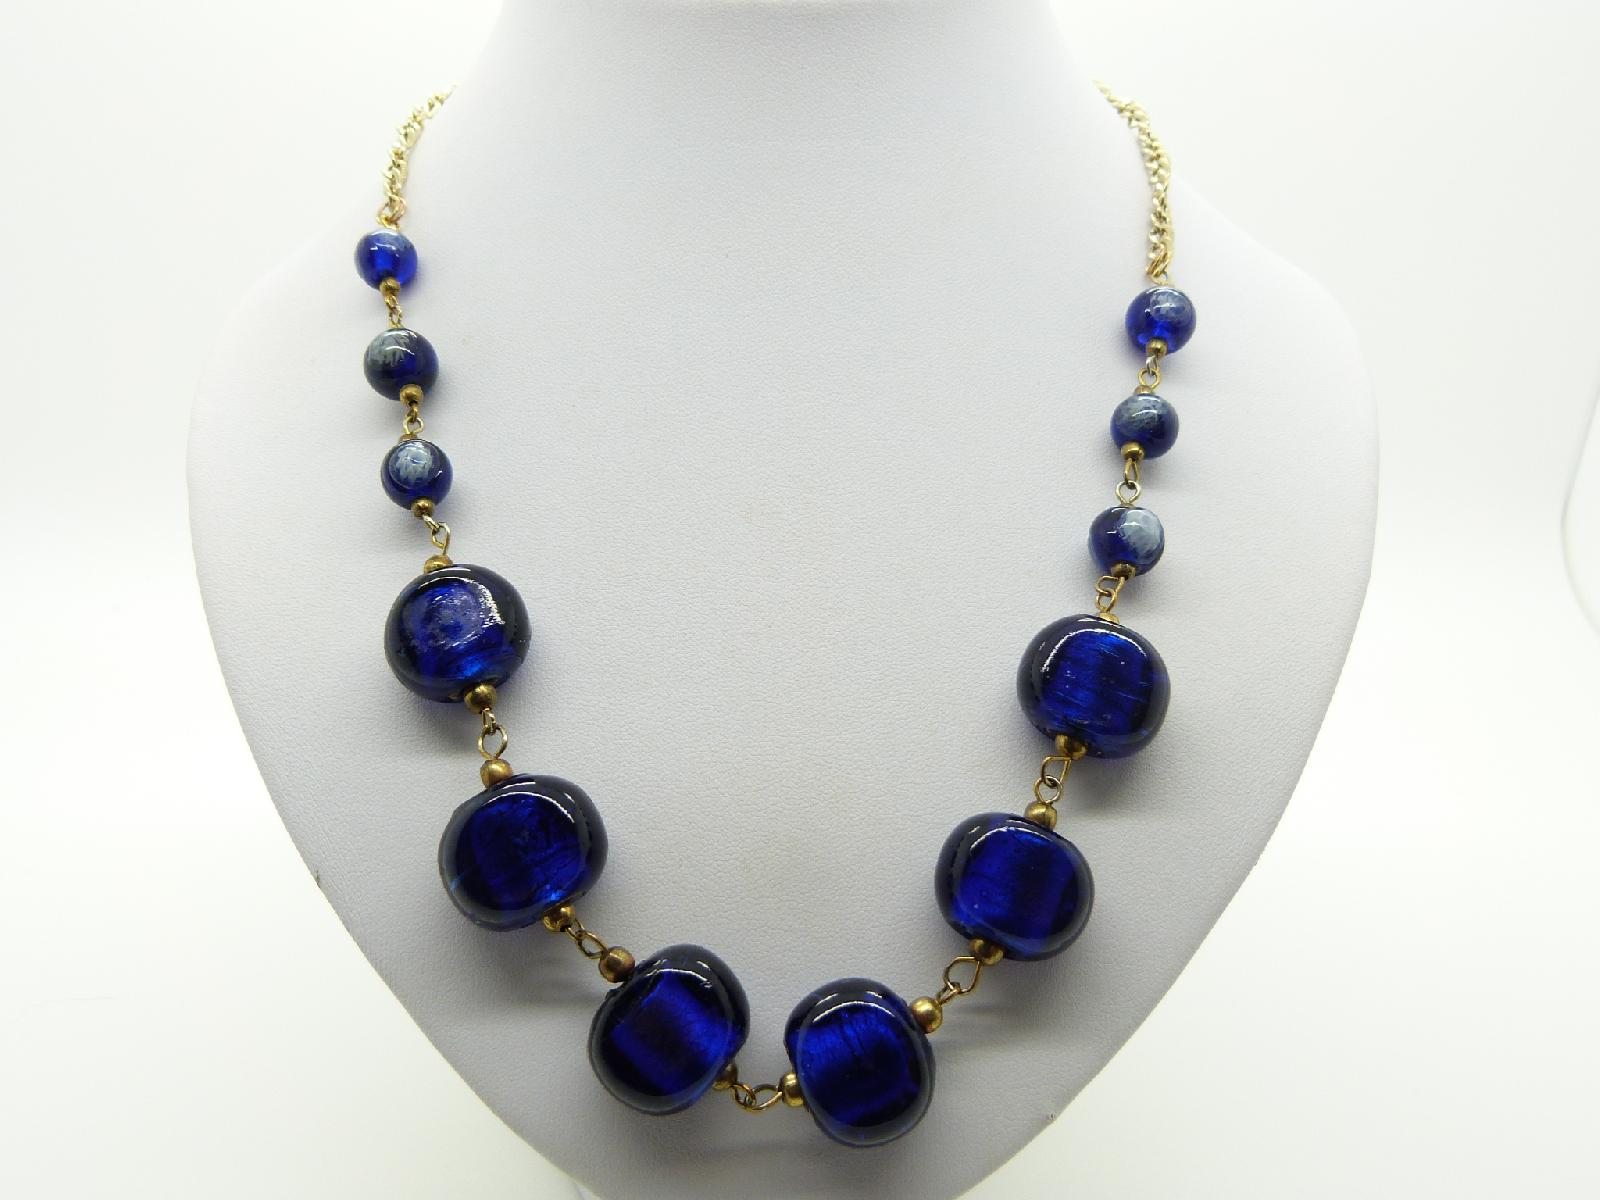 £10.00 - Pretty and Unusual Violet Blue Glass Bead Goldtone Chain Necklace